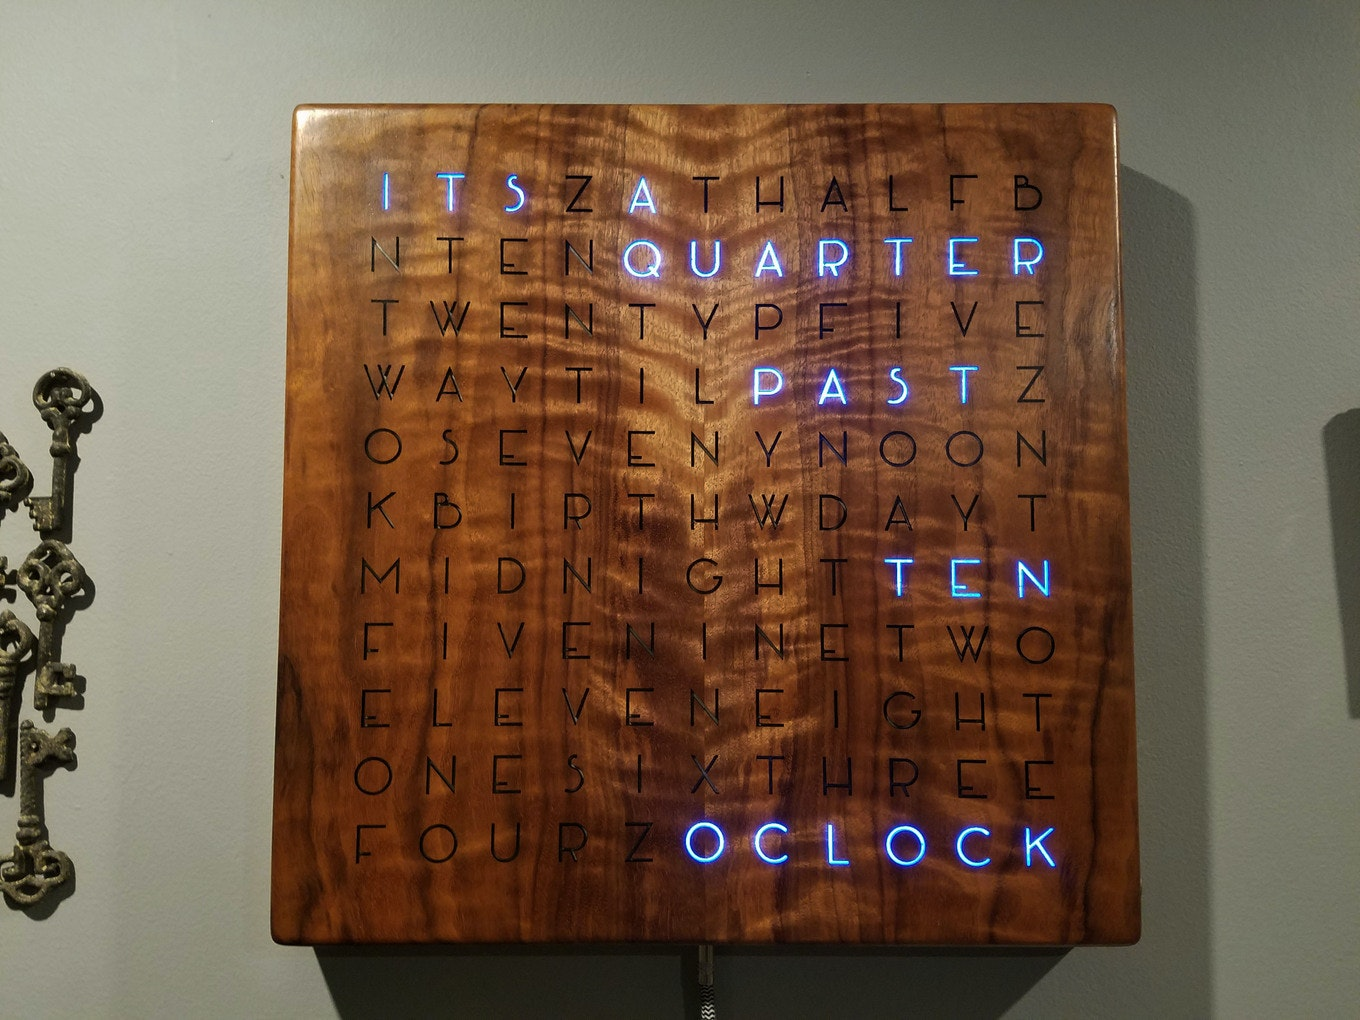 Graham's finished word clock